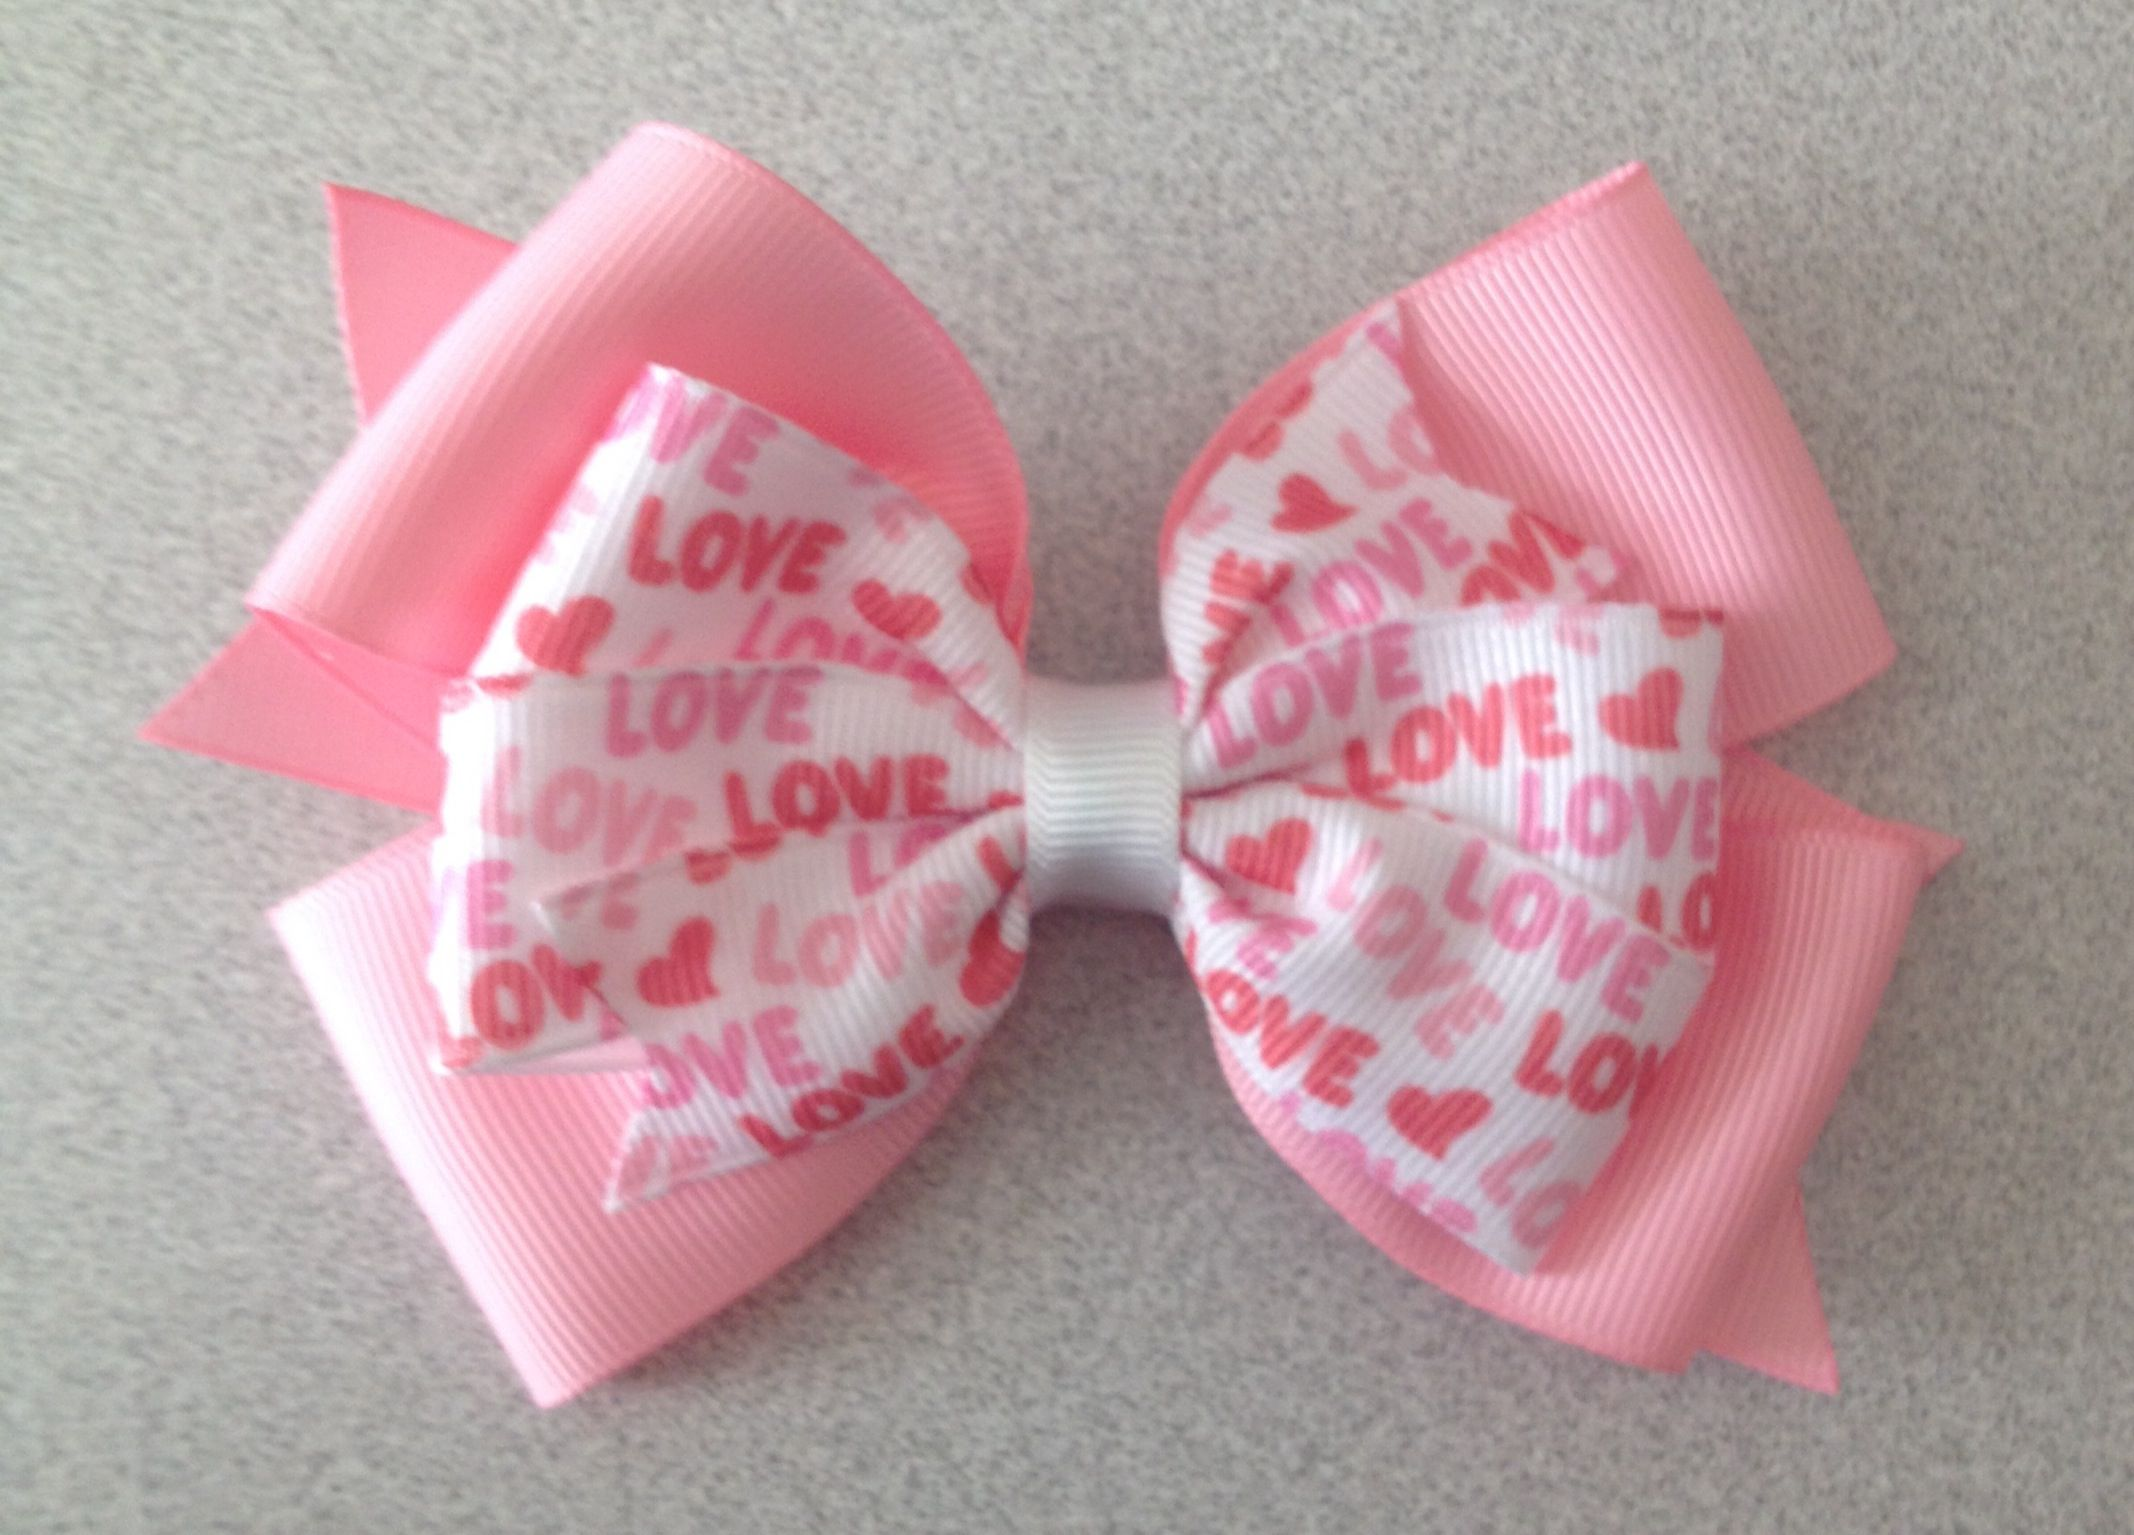 Love Pink Layered Bow -$4.00 www.facebook.com/treasuresbyhand